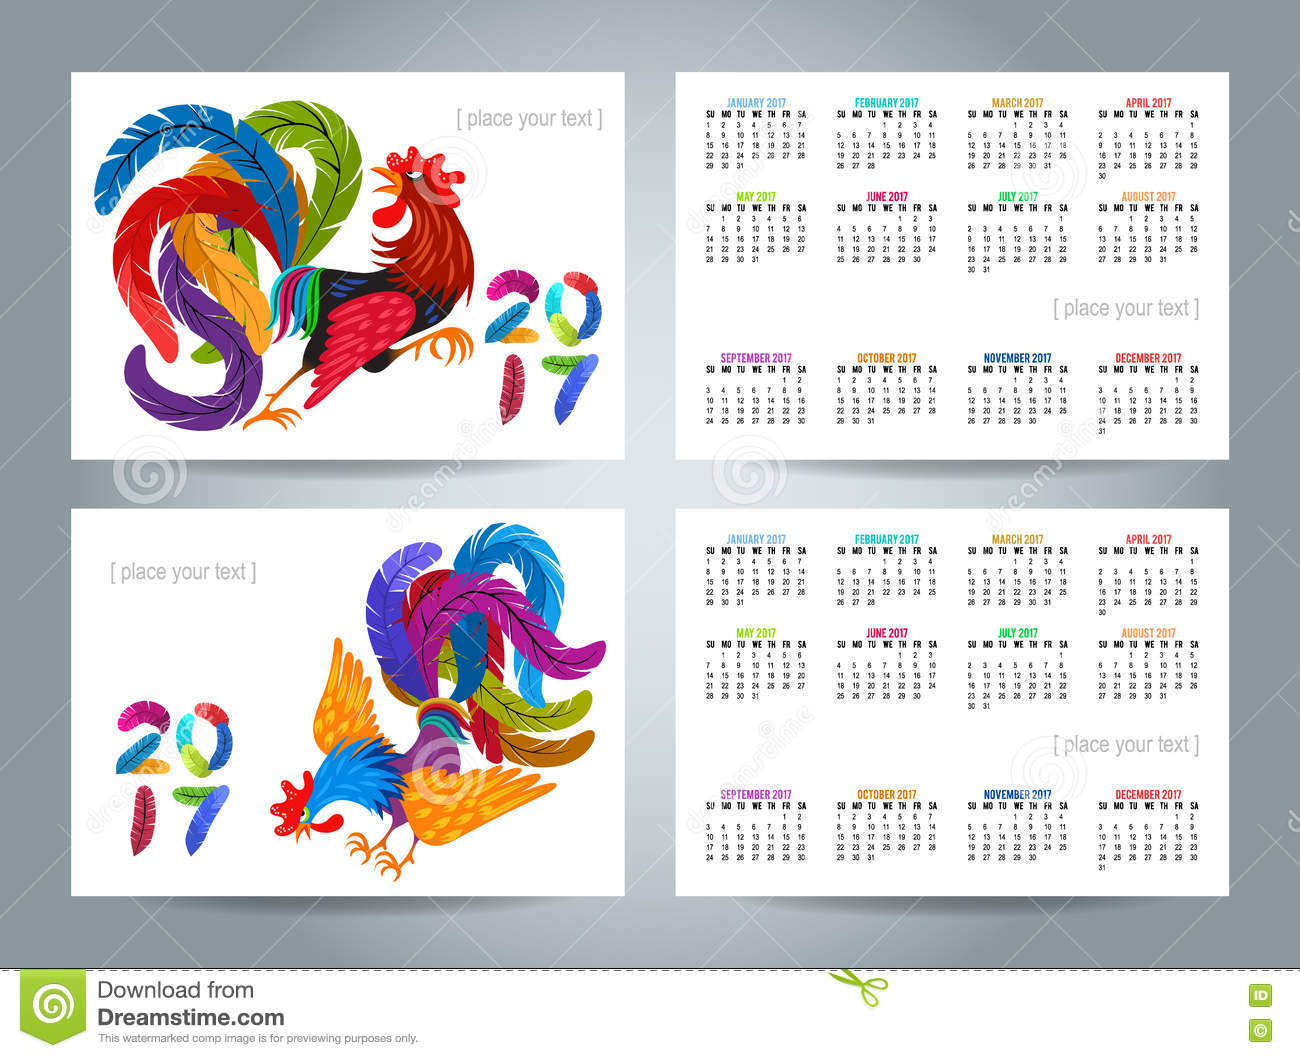 Calendar Design Drawing : Roosters with graphic patterns made by hand symbol of